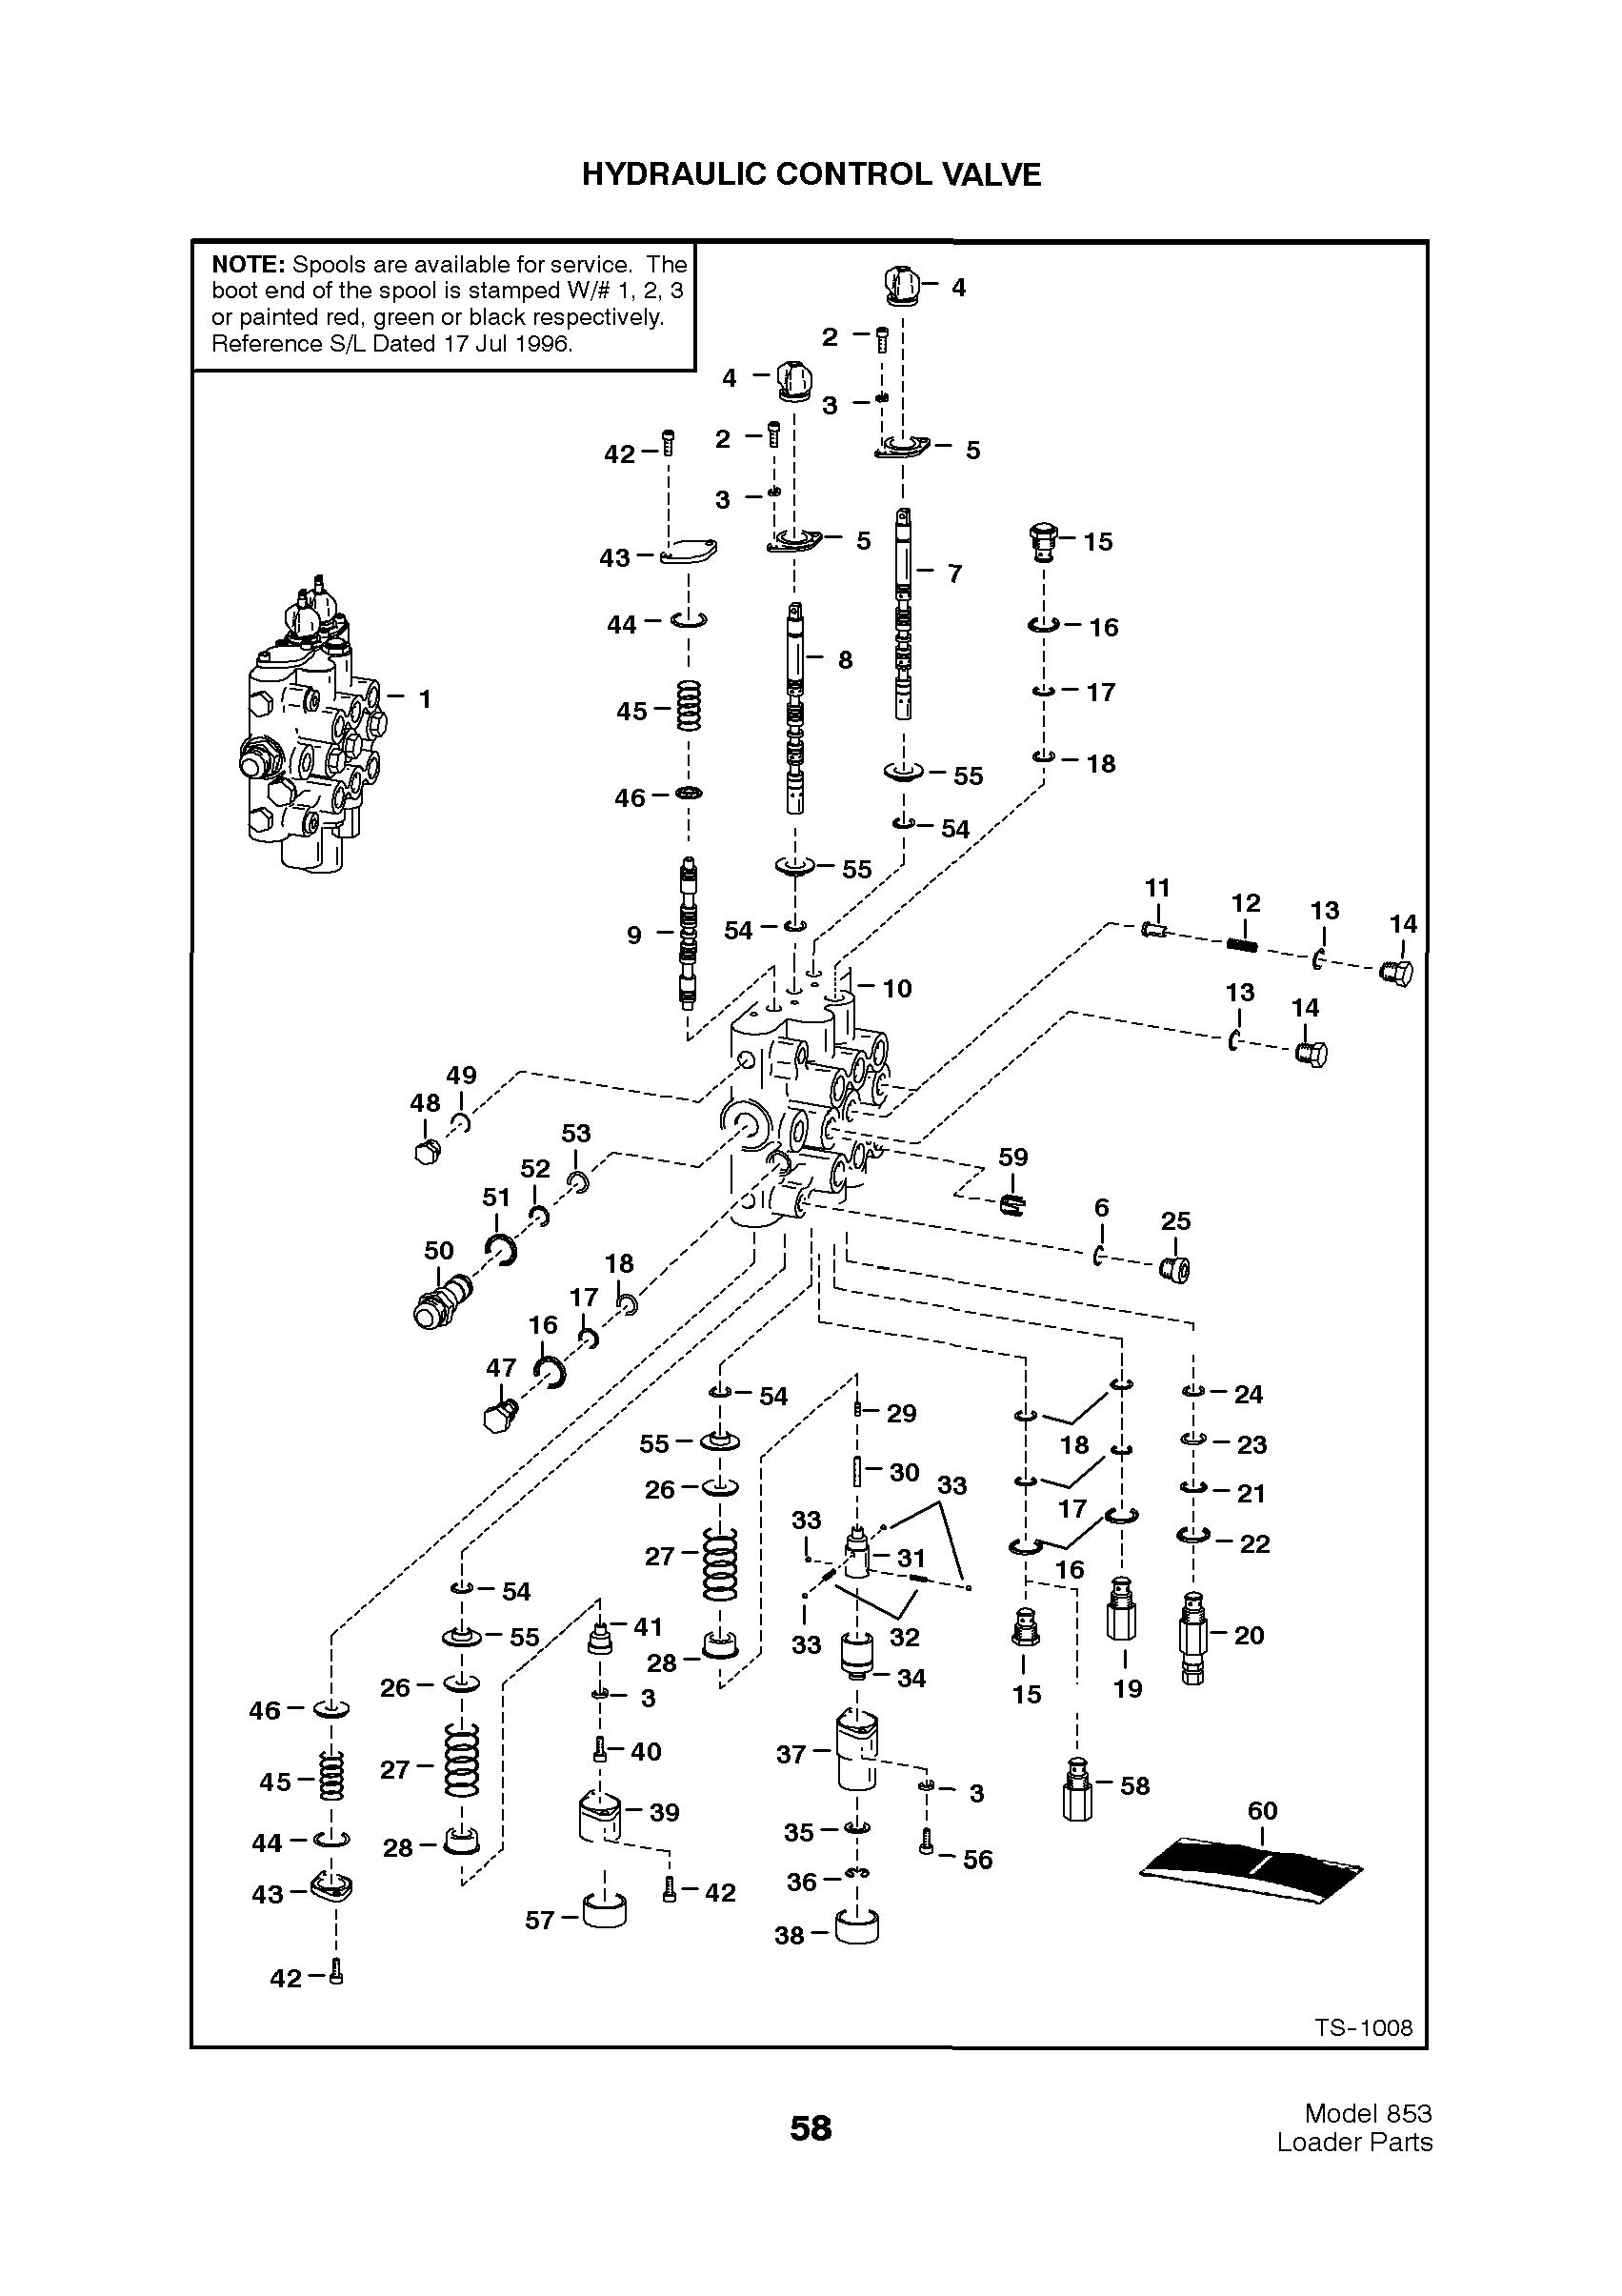 hight resolution of bobcat hydraulic schematic schema diagram database bobcat 773 hydraulic diagram 773 bobcat hydraulic diagram